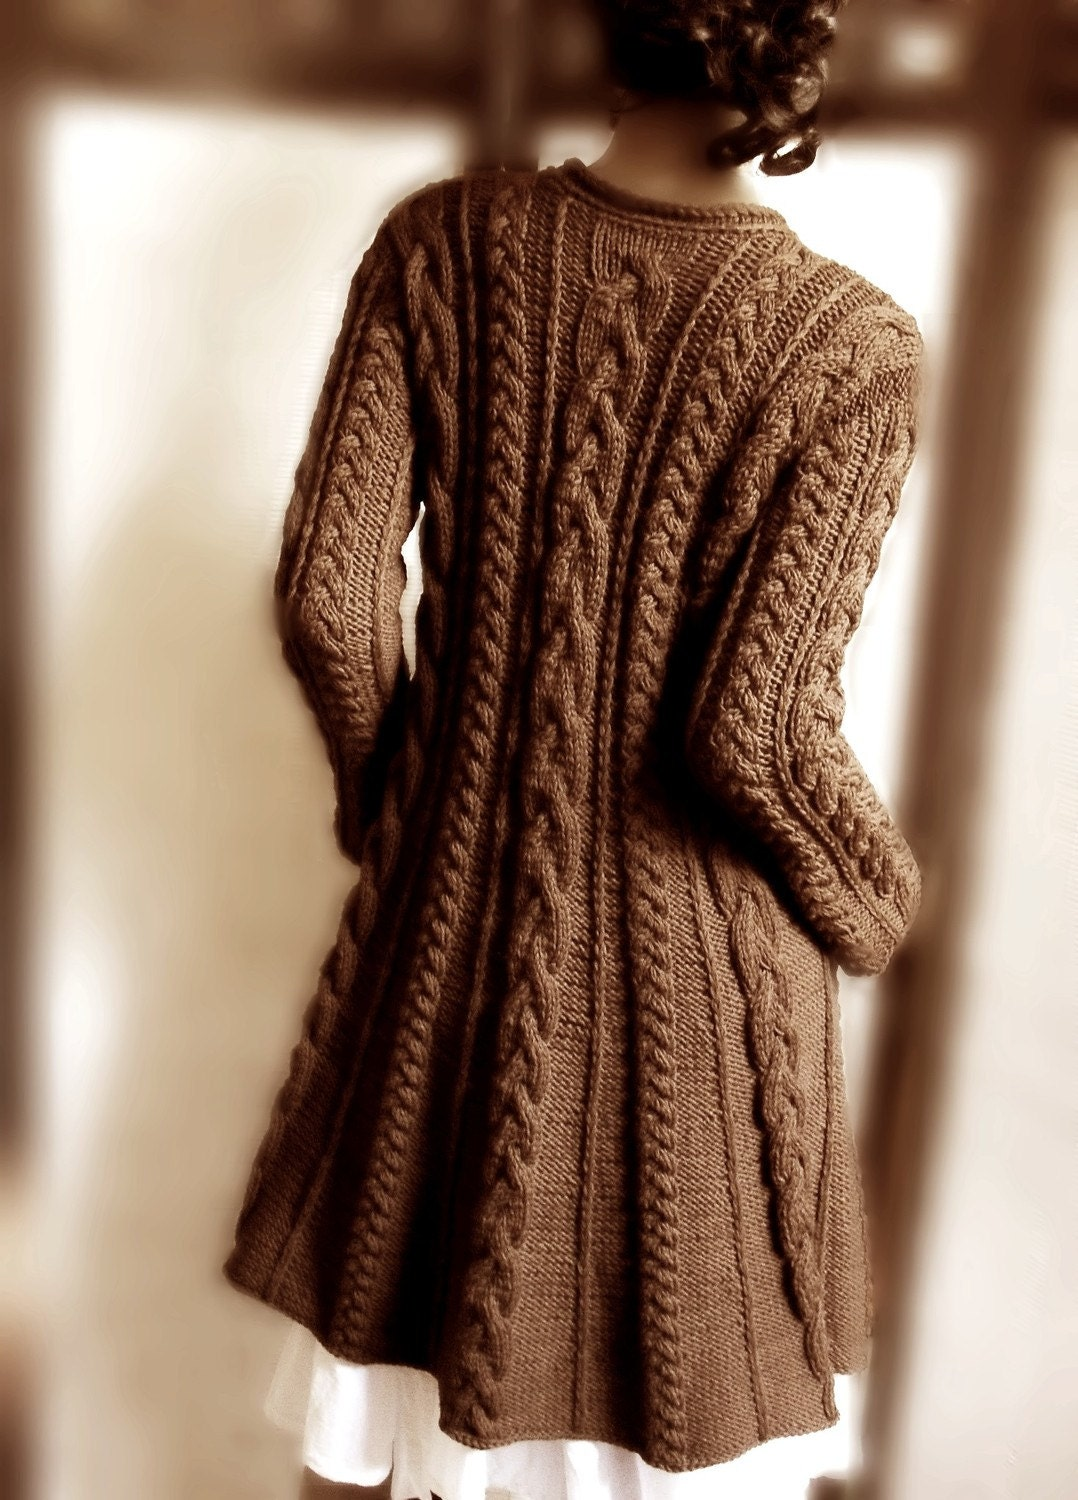 Sweater Knit : Hand knit wool cable sweater coat many